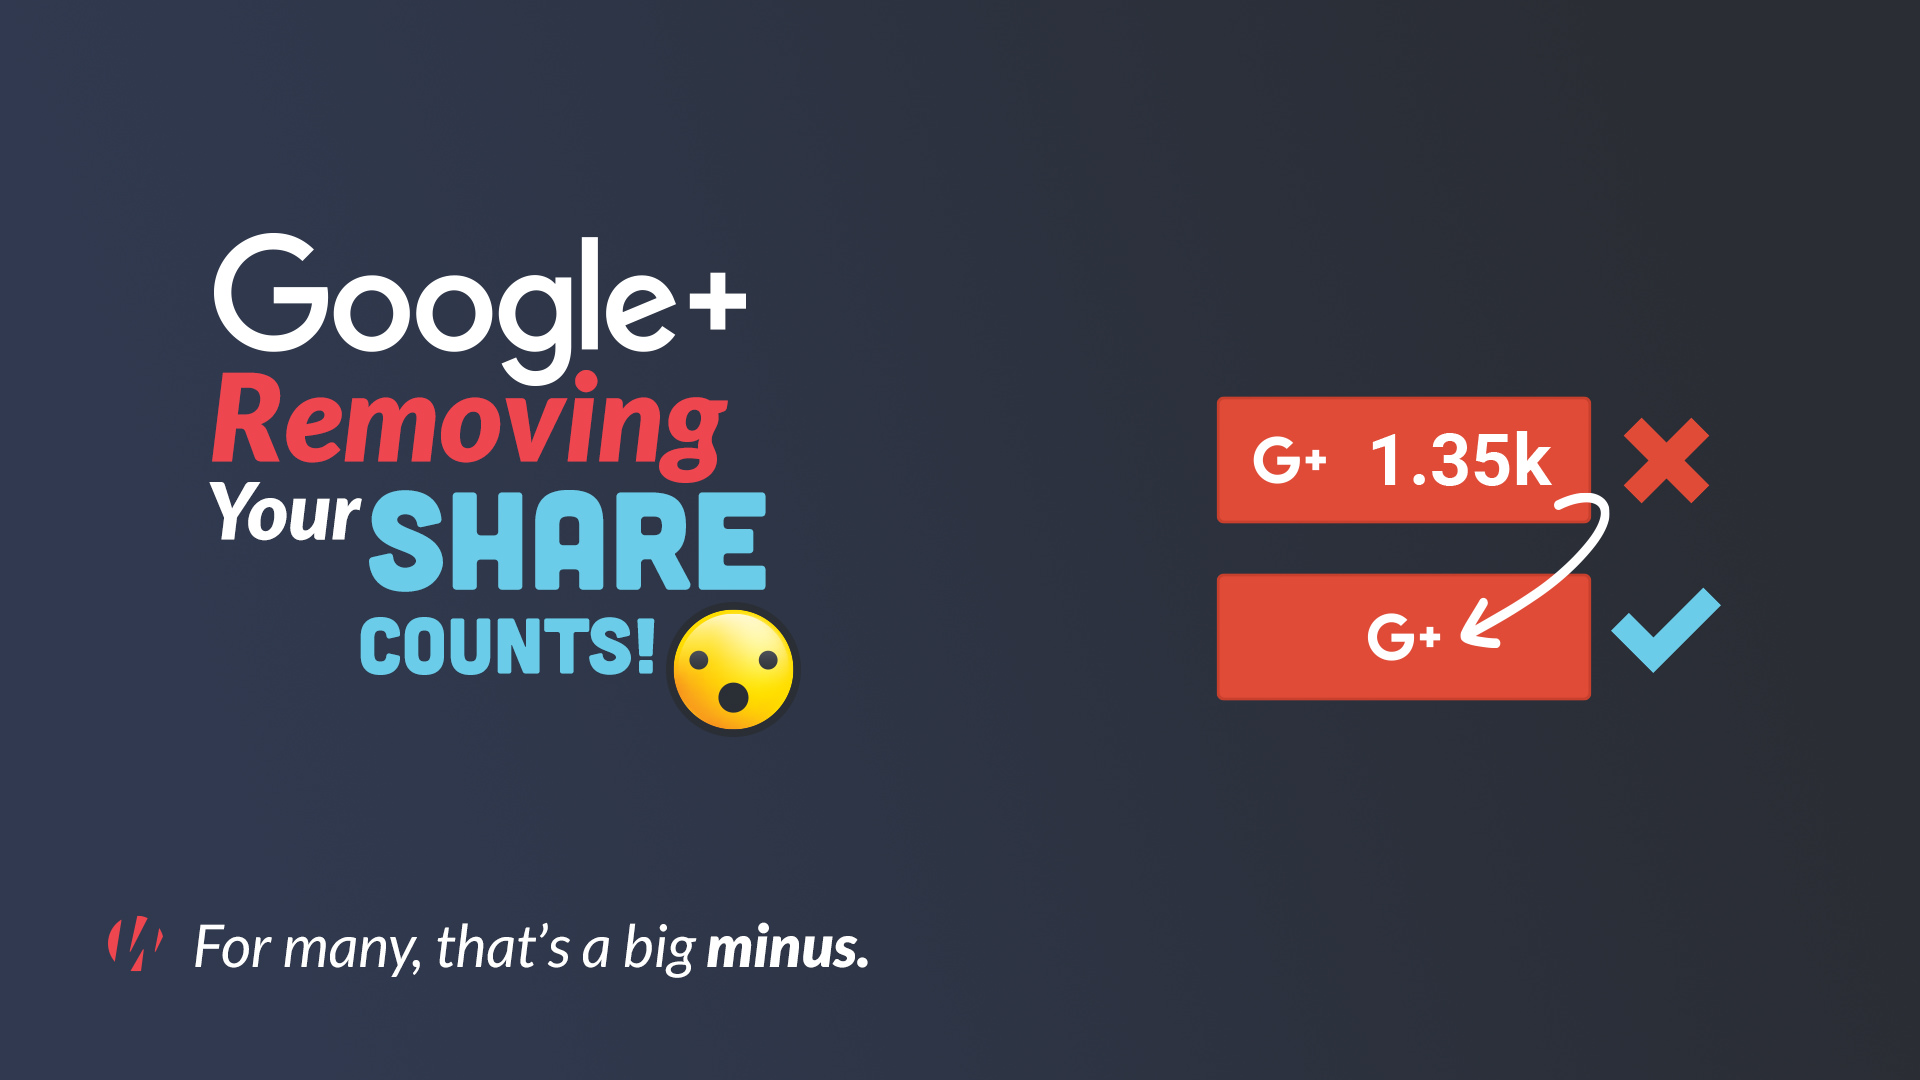 google is removing share counts everything you need to know rh warfareplugins com Google Plus Icon Black Google Plus Icon Black